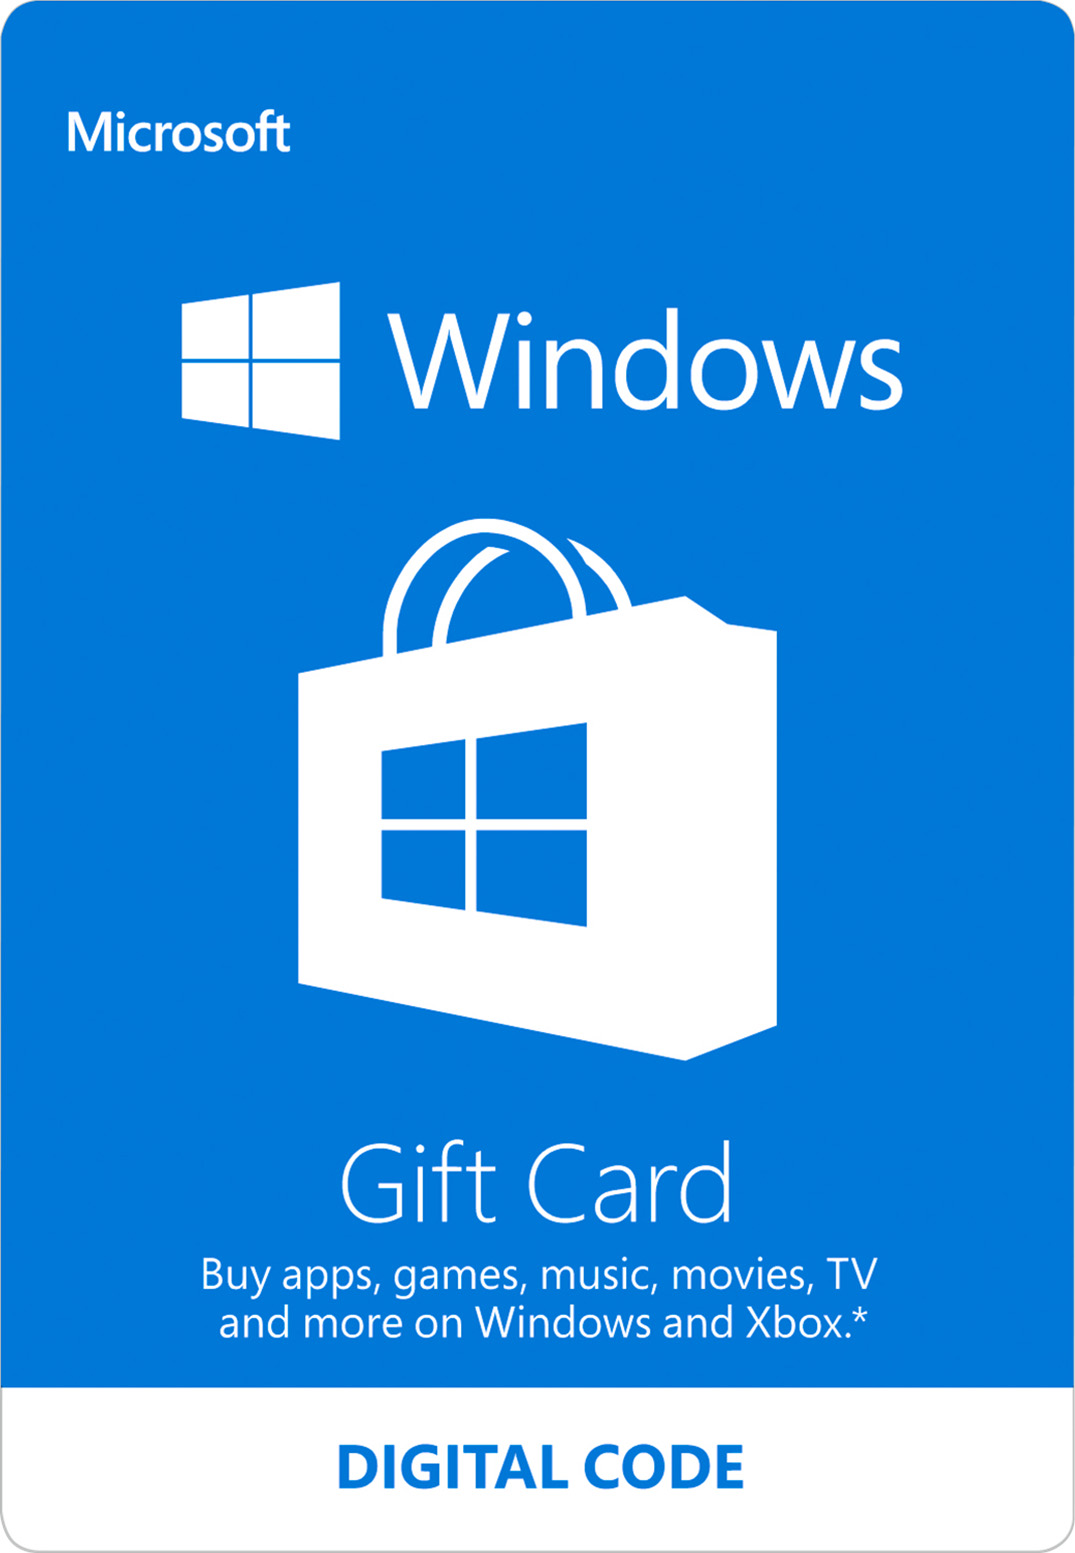 Windows Store Digital Gift Card: $10.00